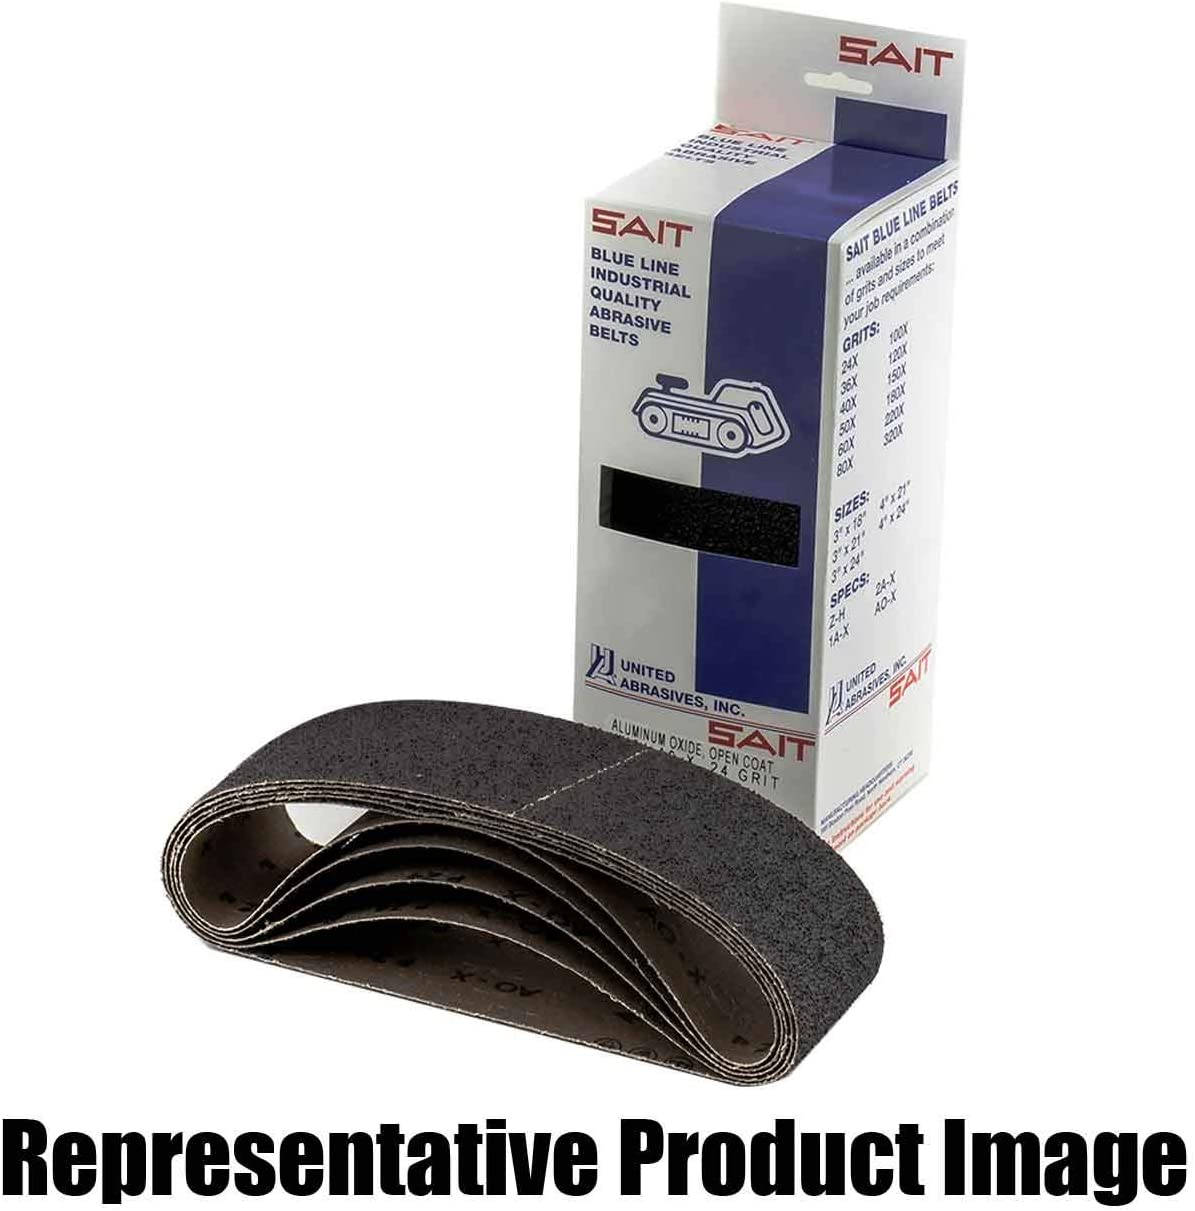 United ABRASIVES BL 25% OFF Belt 4 X Special Campaign 5 Each 58190 24 AO-X